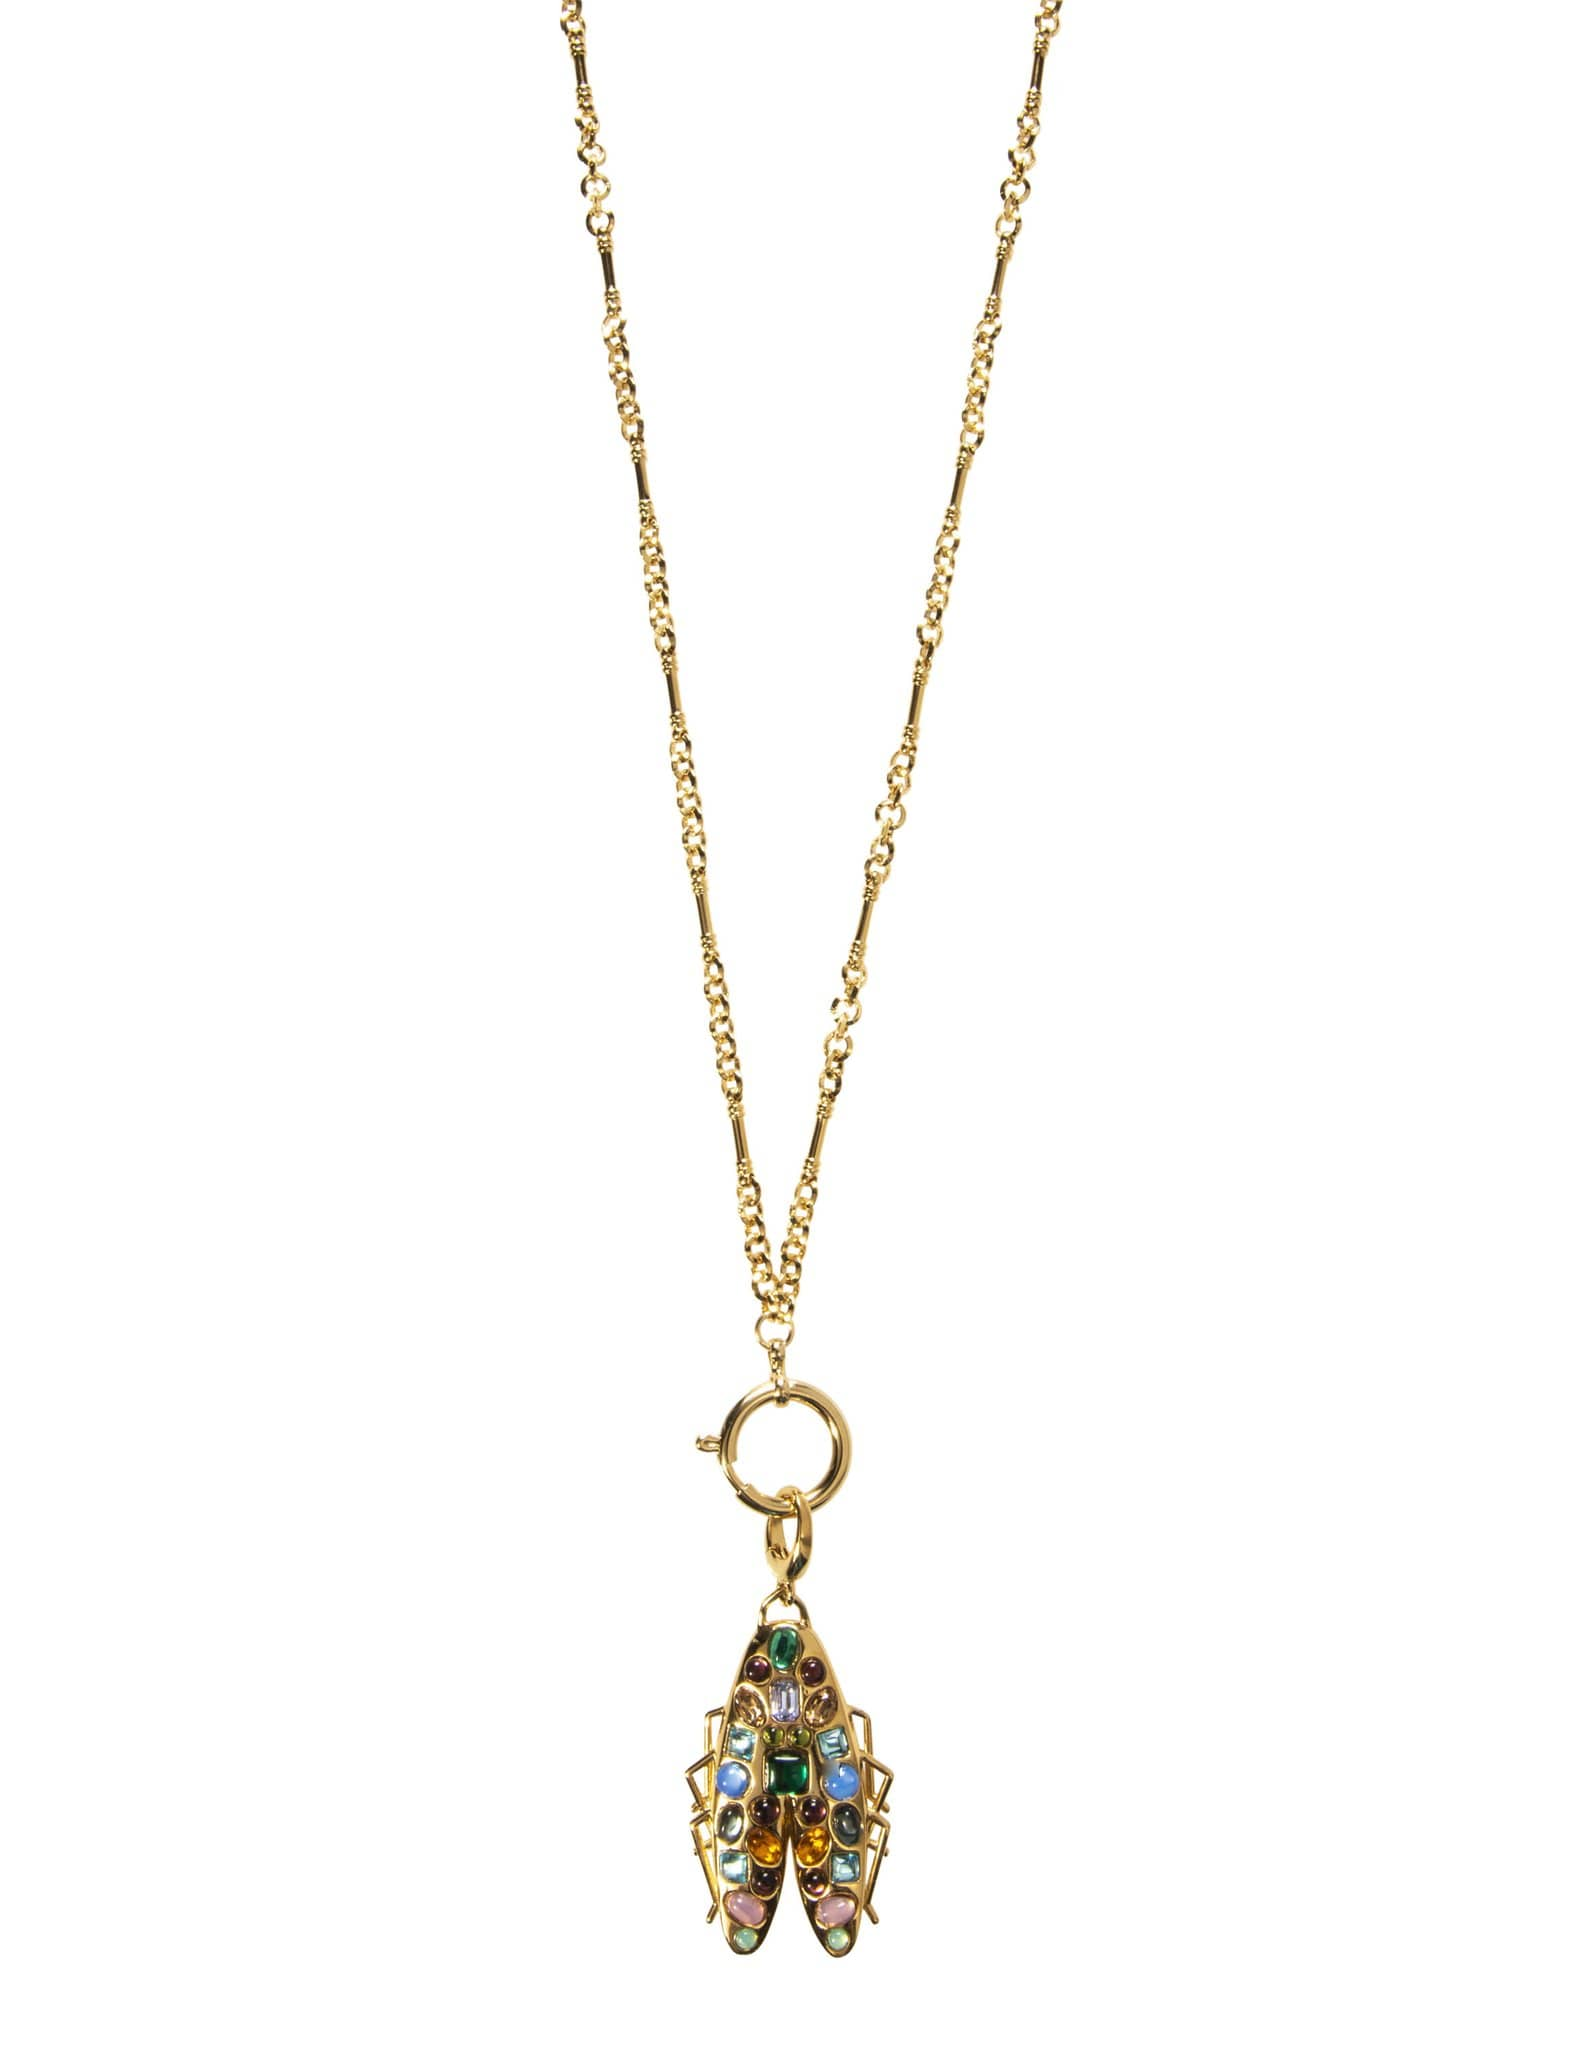 Gemstone Bug Necklace-30 Inch